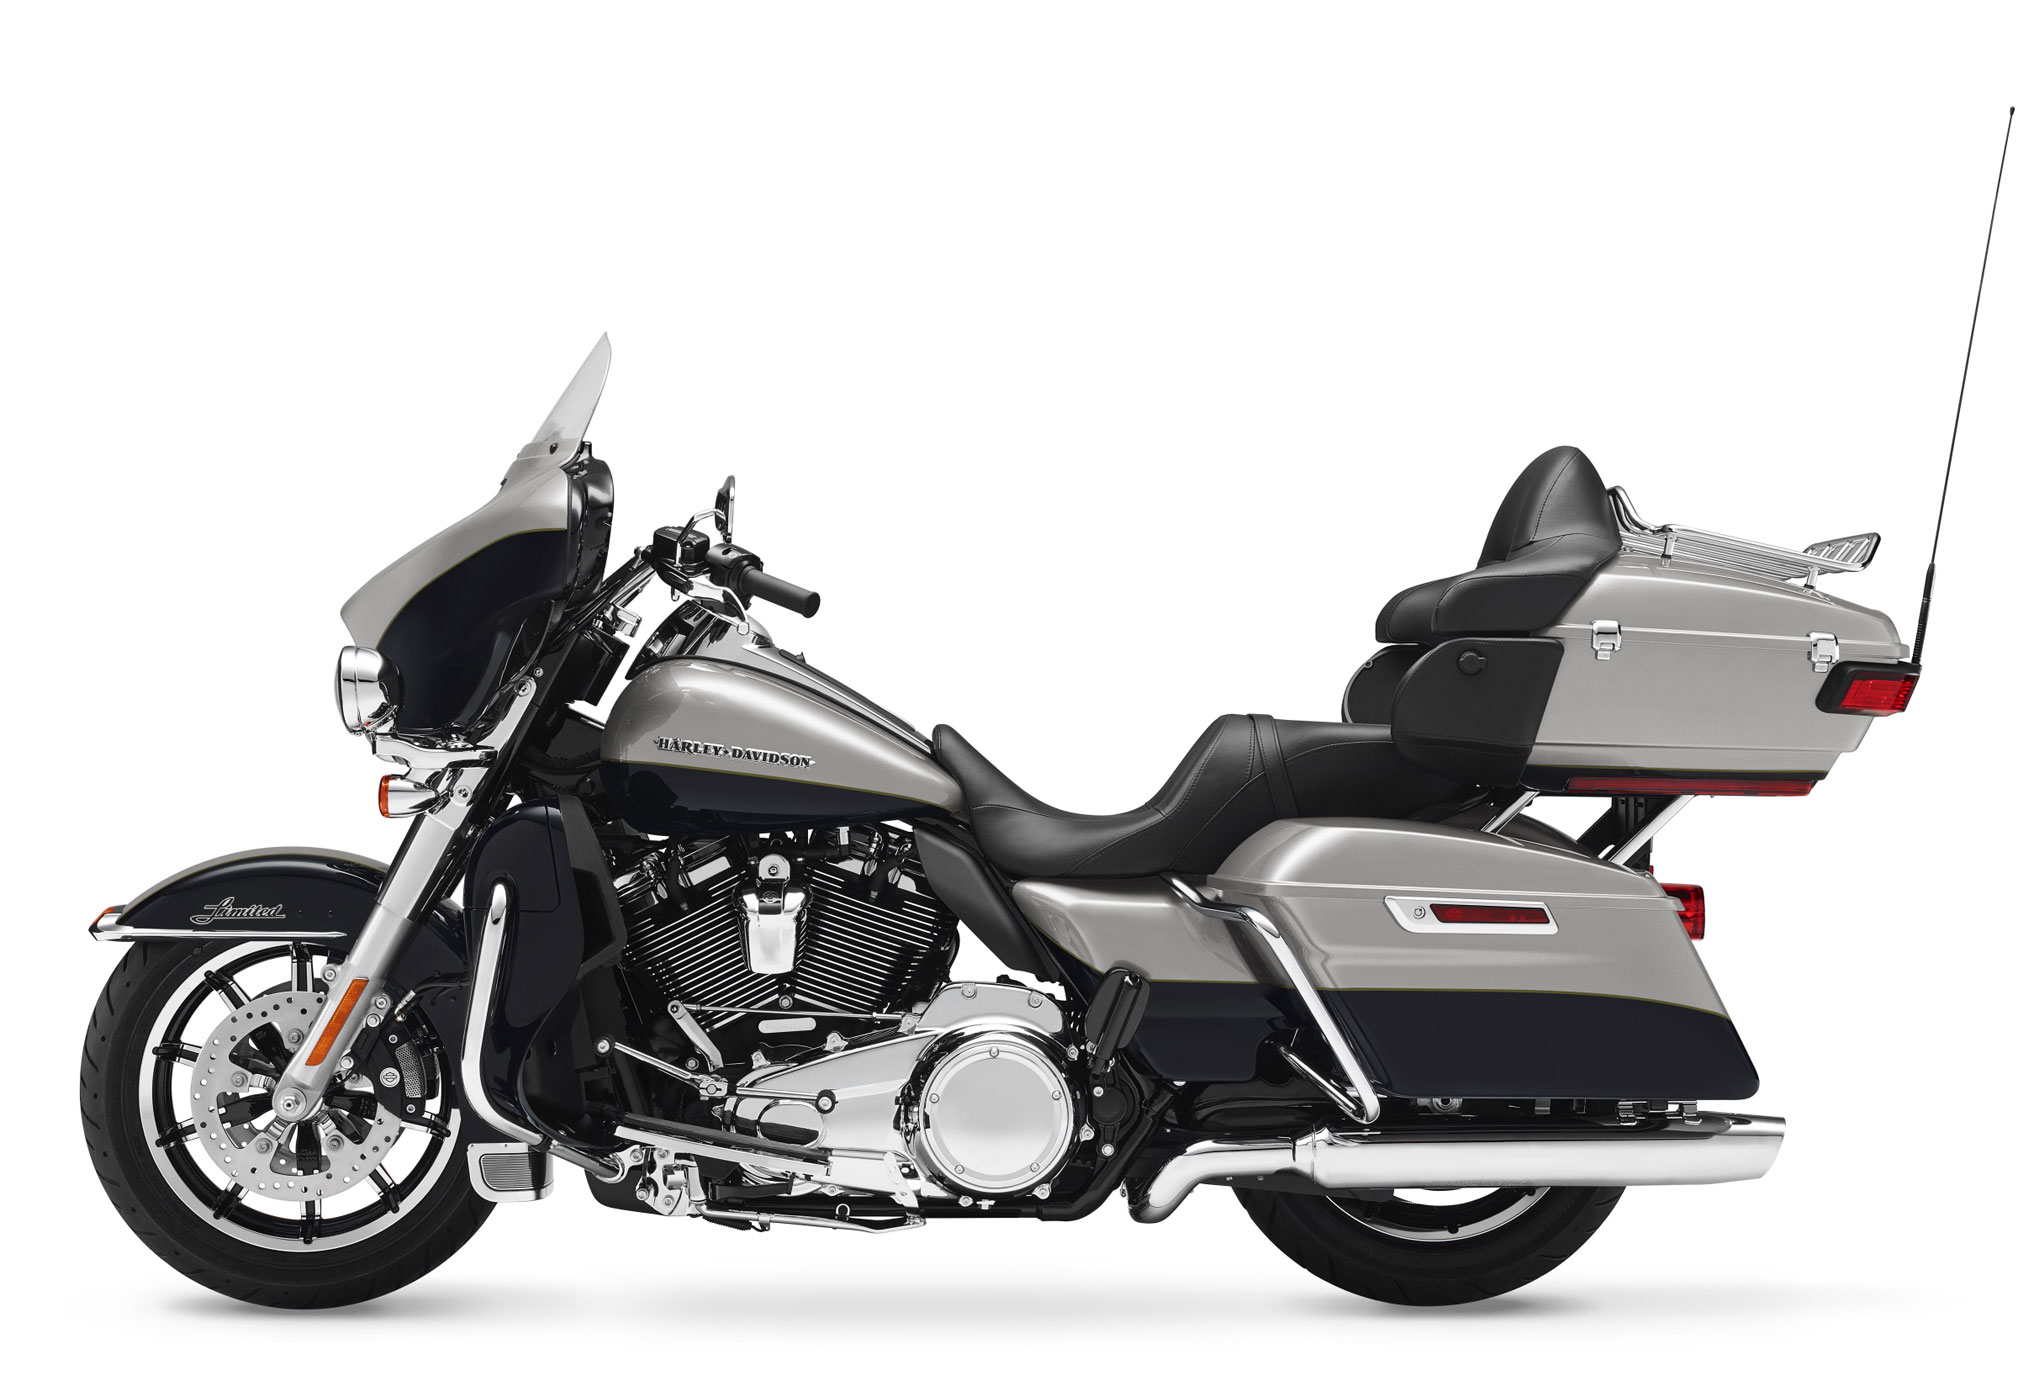 2018 Harley Davidson Ultra Limited Low Review